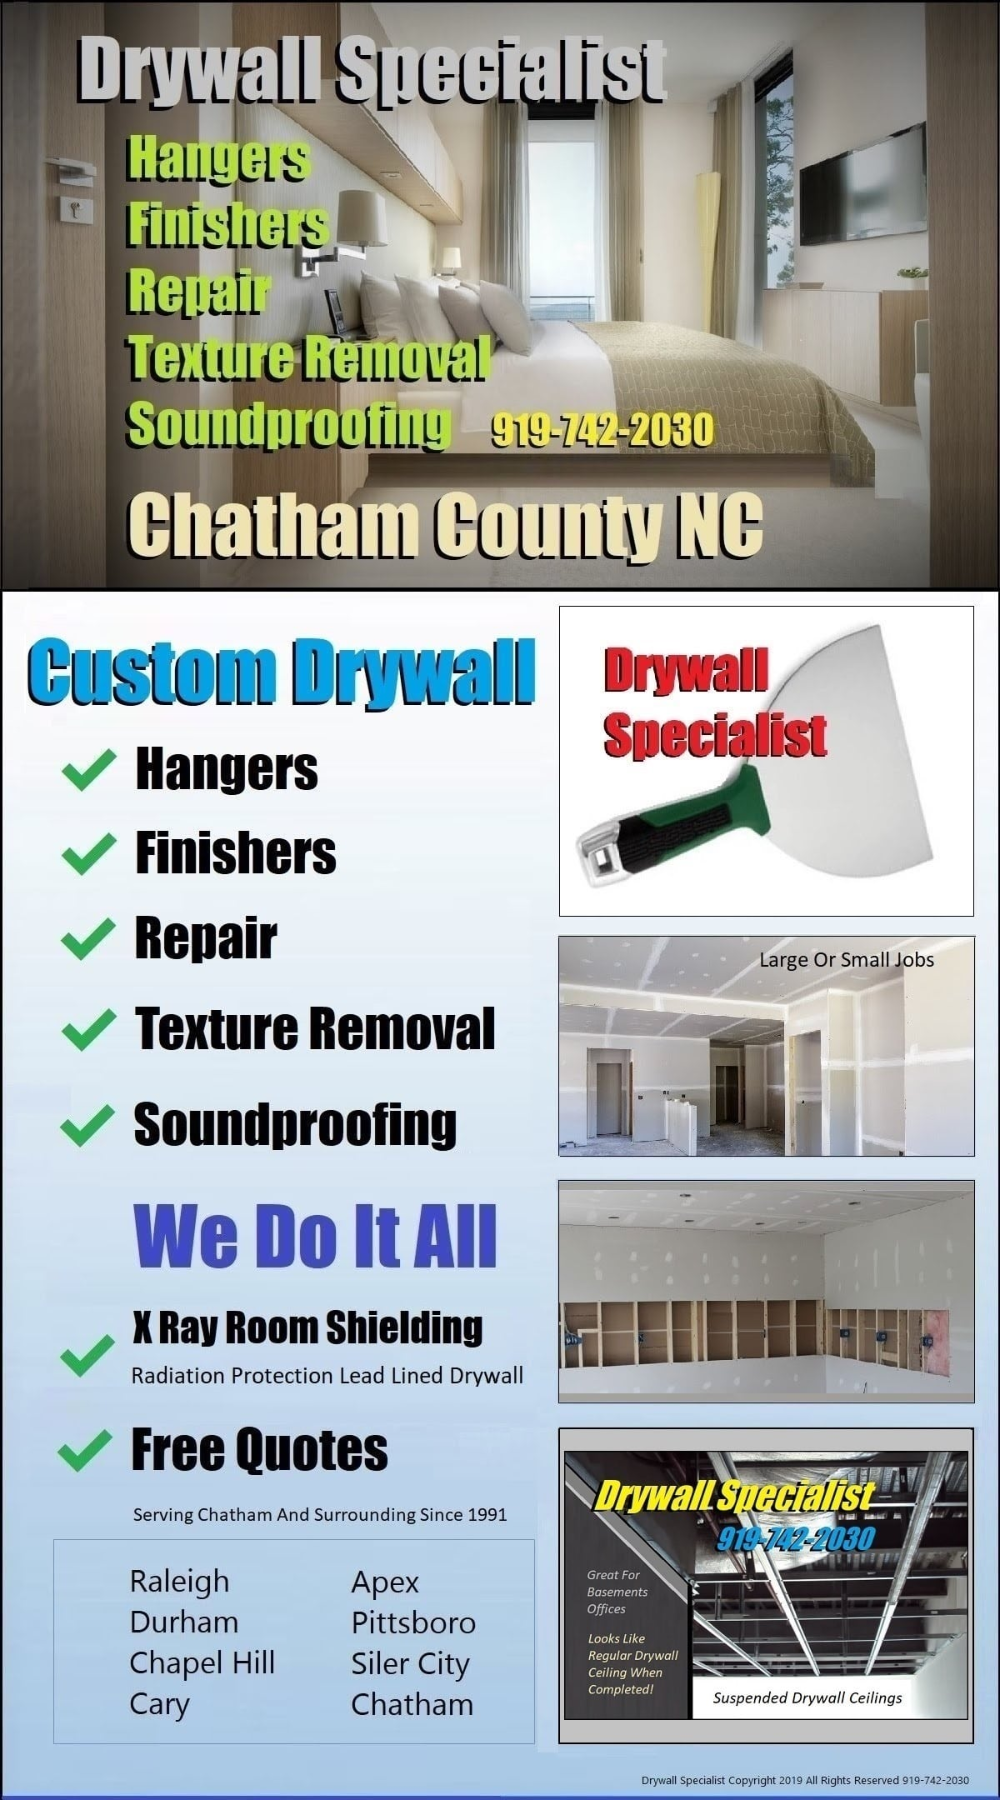 Live In Cary Nc And Looking To Hire A Local Drywall Contractor For Installation Finishing Repair Or Popcorn Texture In 2020 Drywall Repair Chatham County Pittsboro